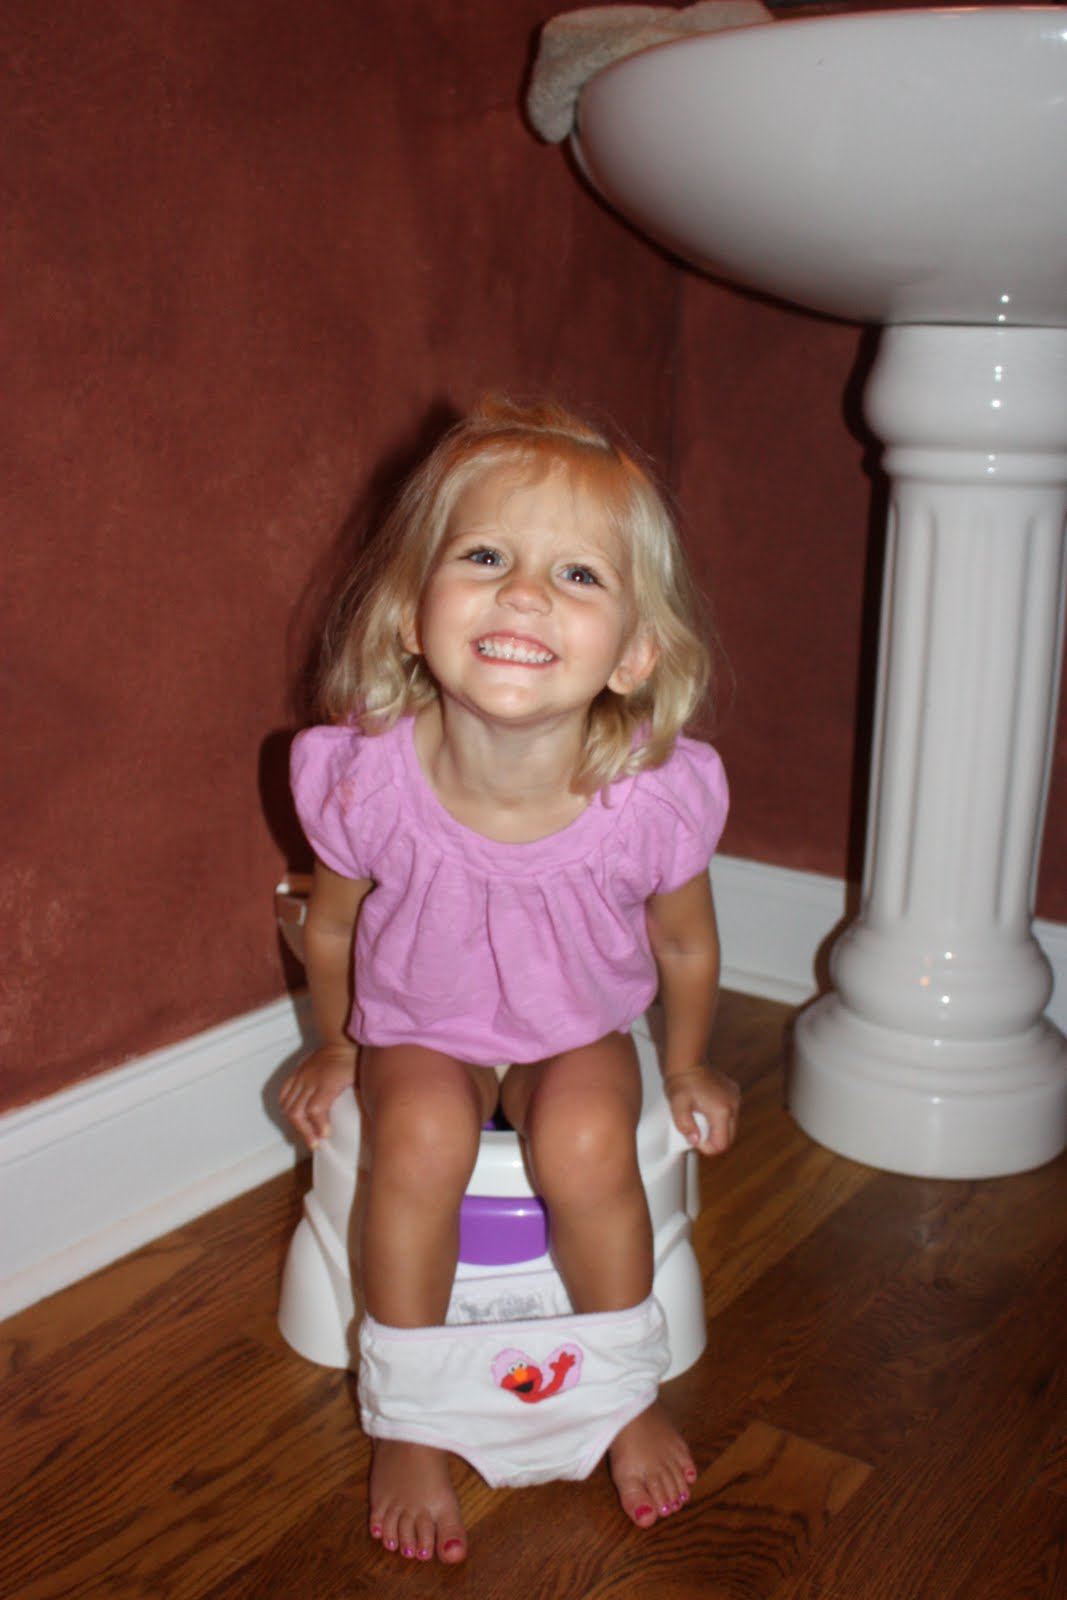 The Baker's: Potty Training Weekend